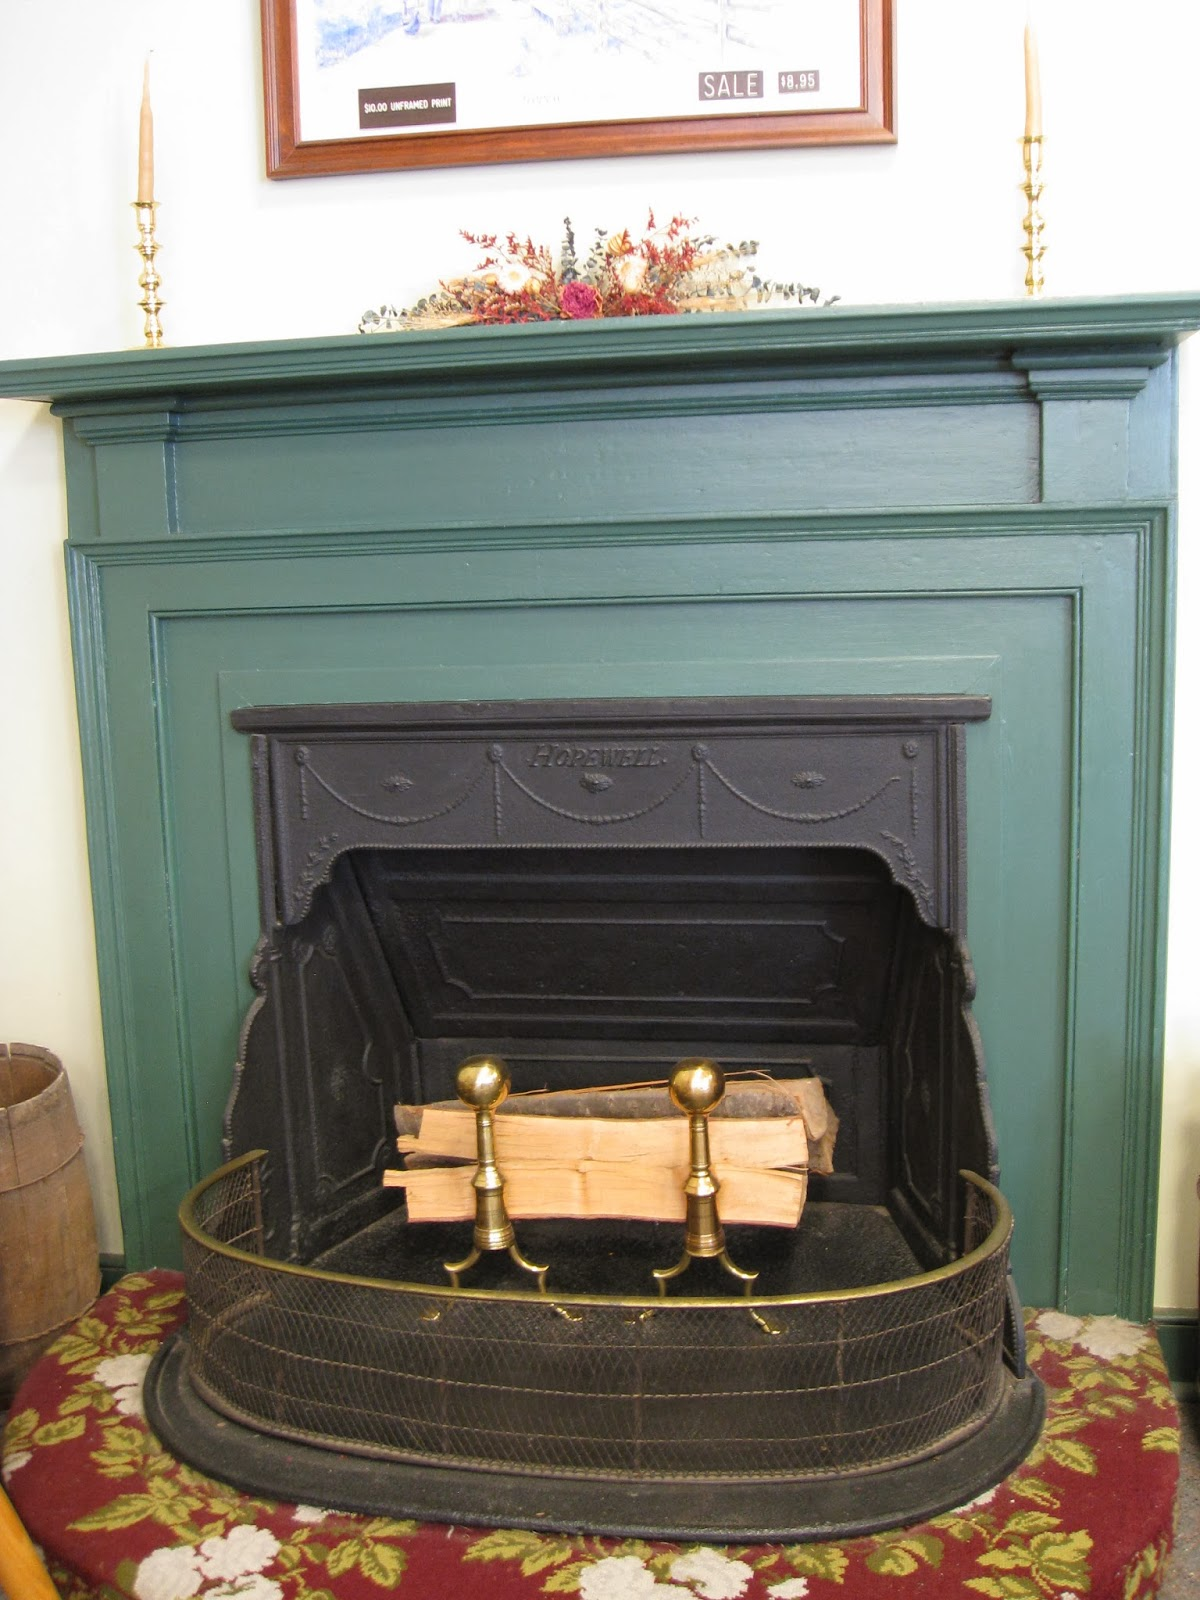 a stove less ordinary a collection of stoves from american